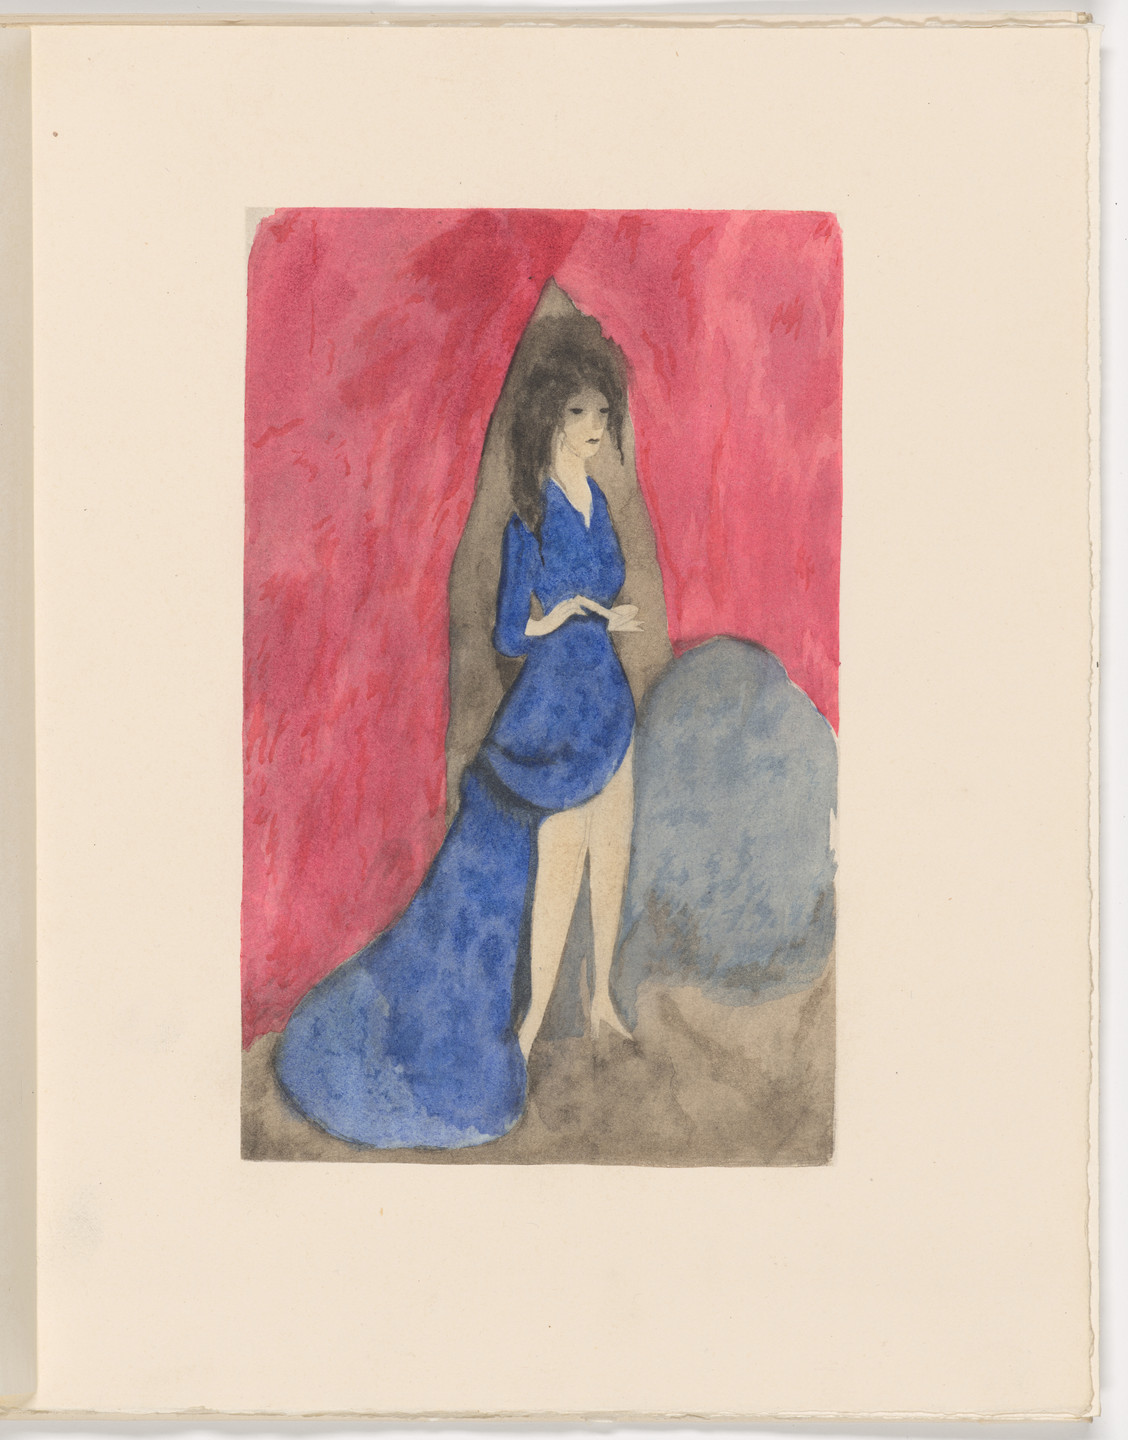 Marie Laurencin. Plate (folio 28) from Les Biches, vol. I. 1924